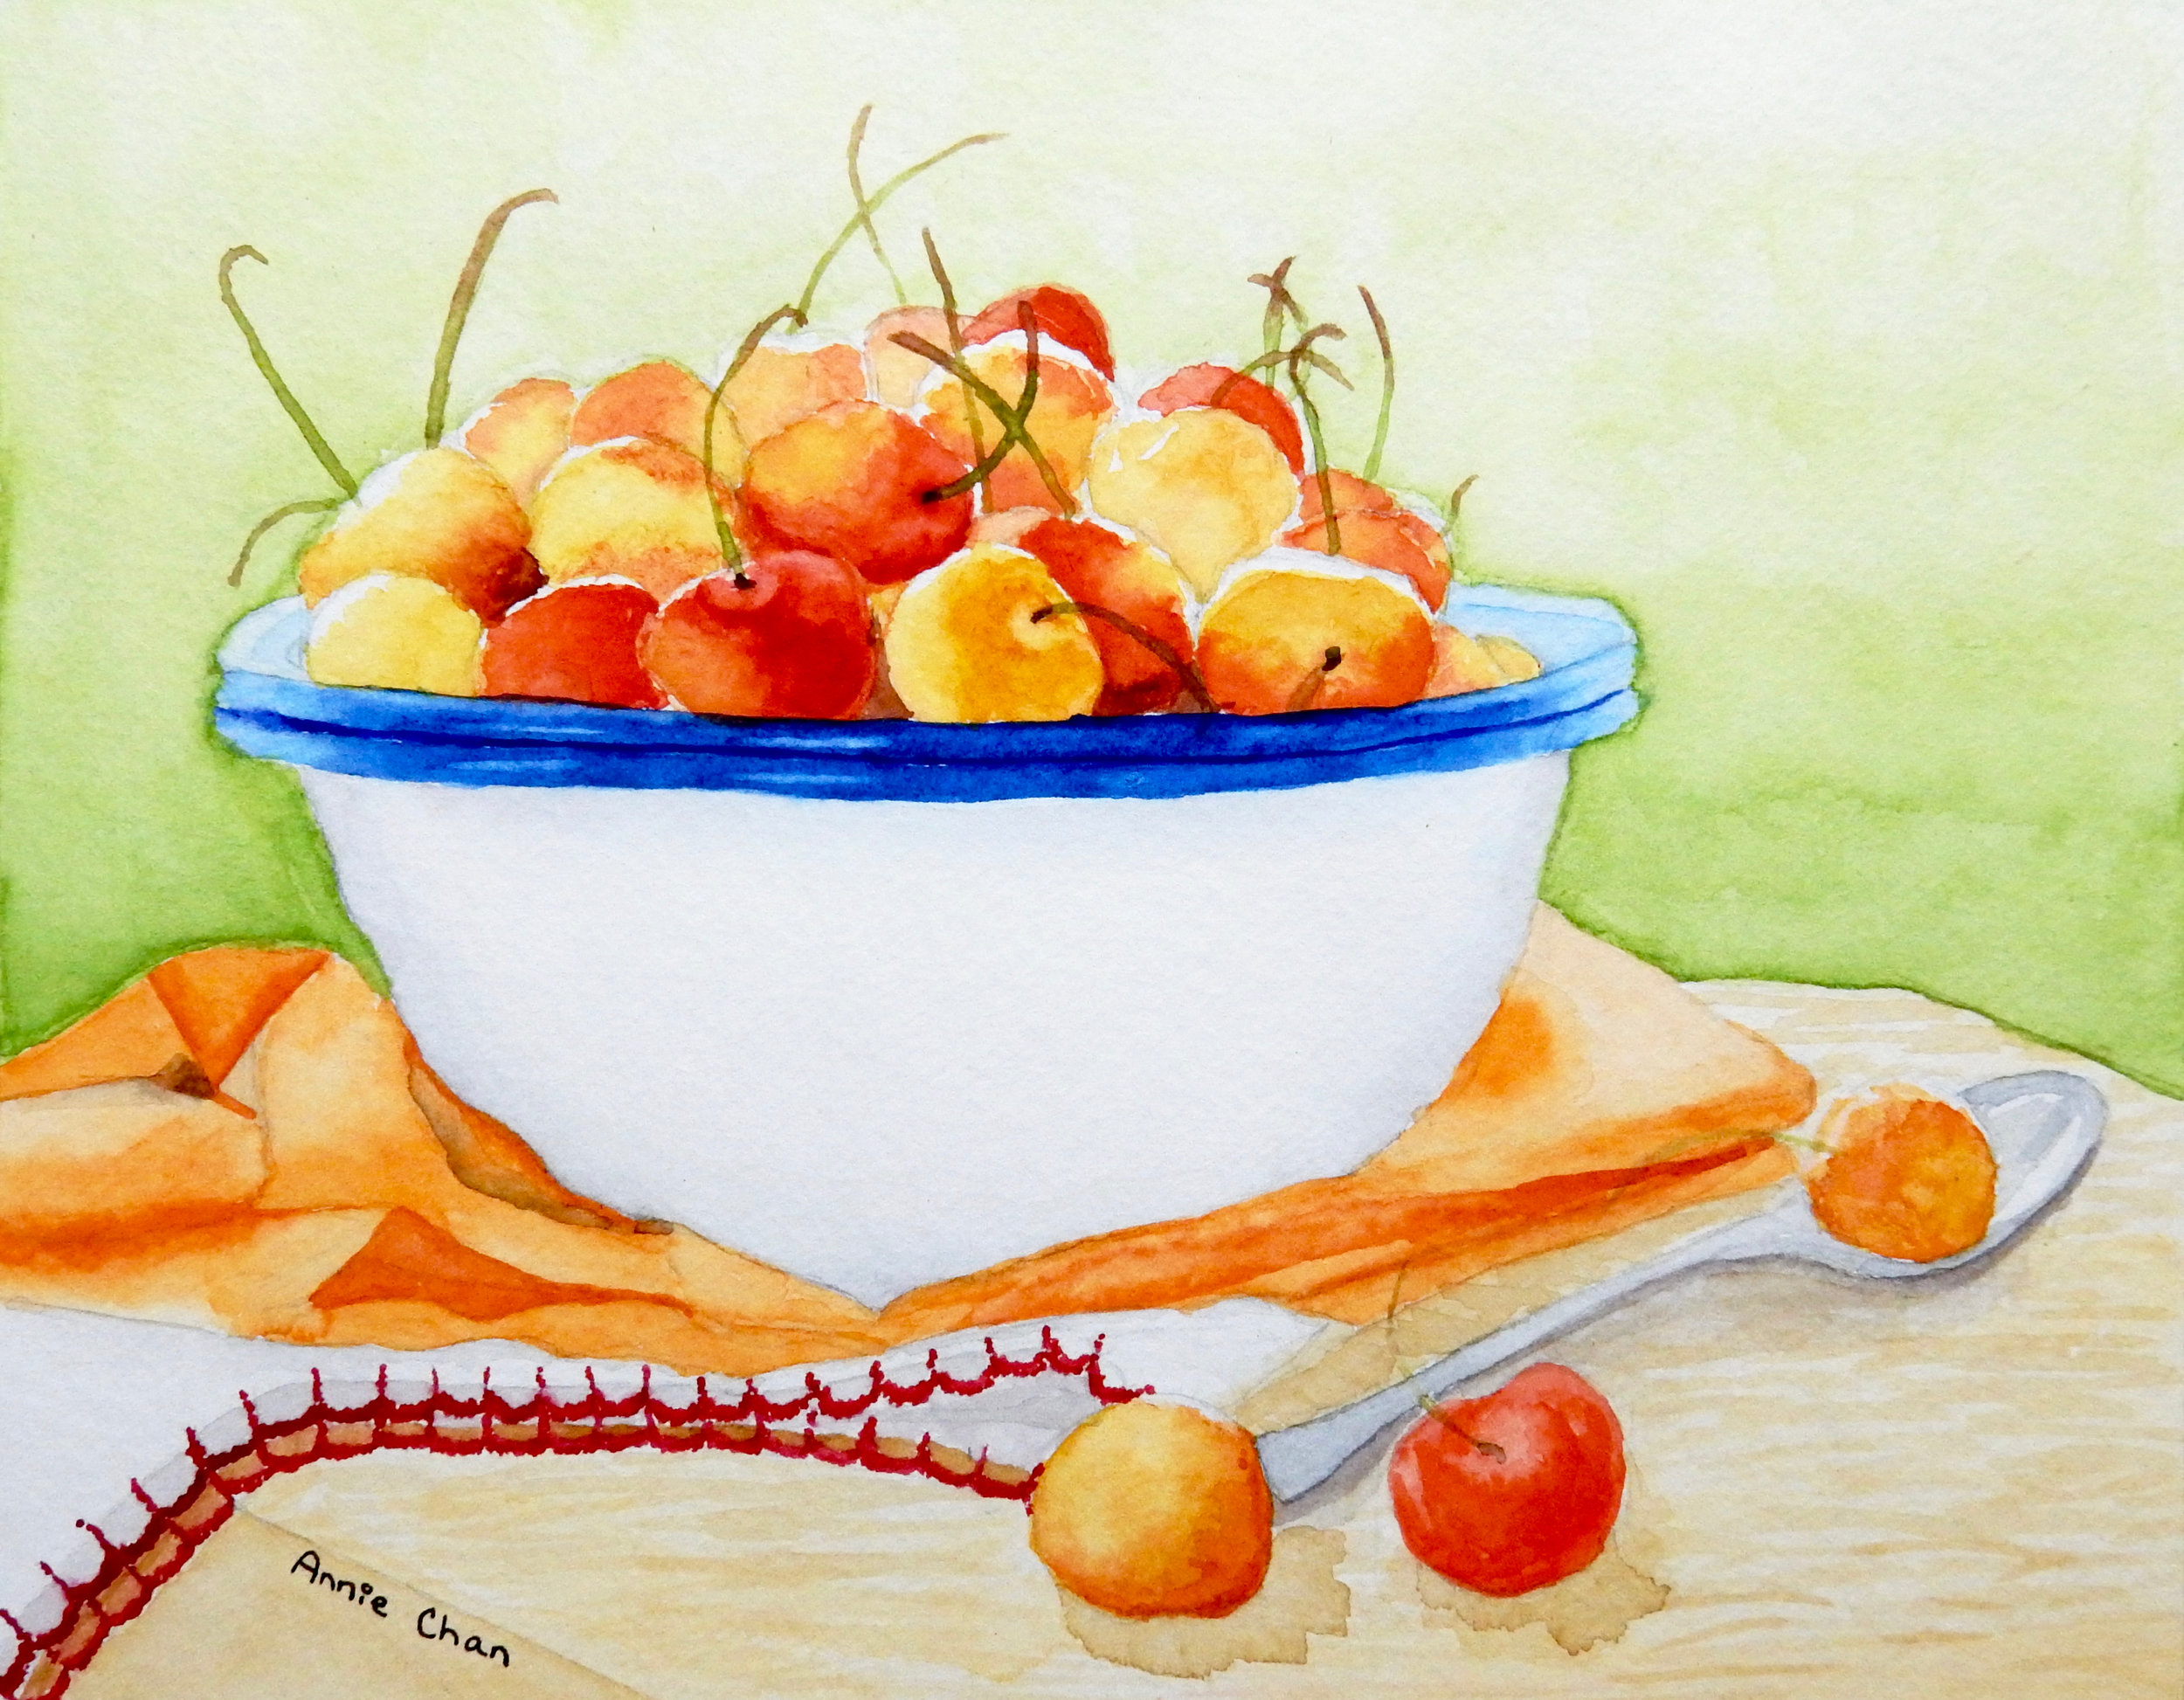 Annie Chan.6th grade.Bowl of Cherries.watercolor